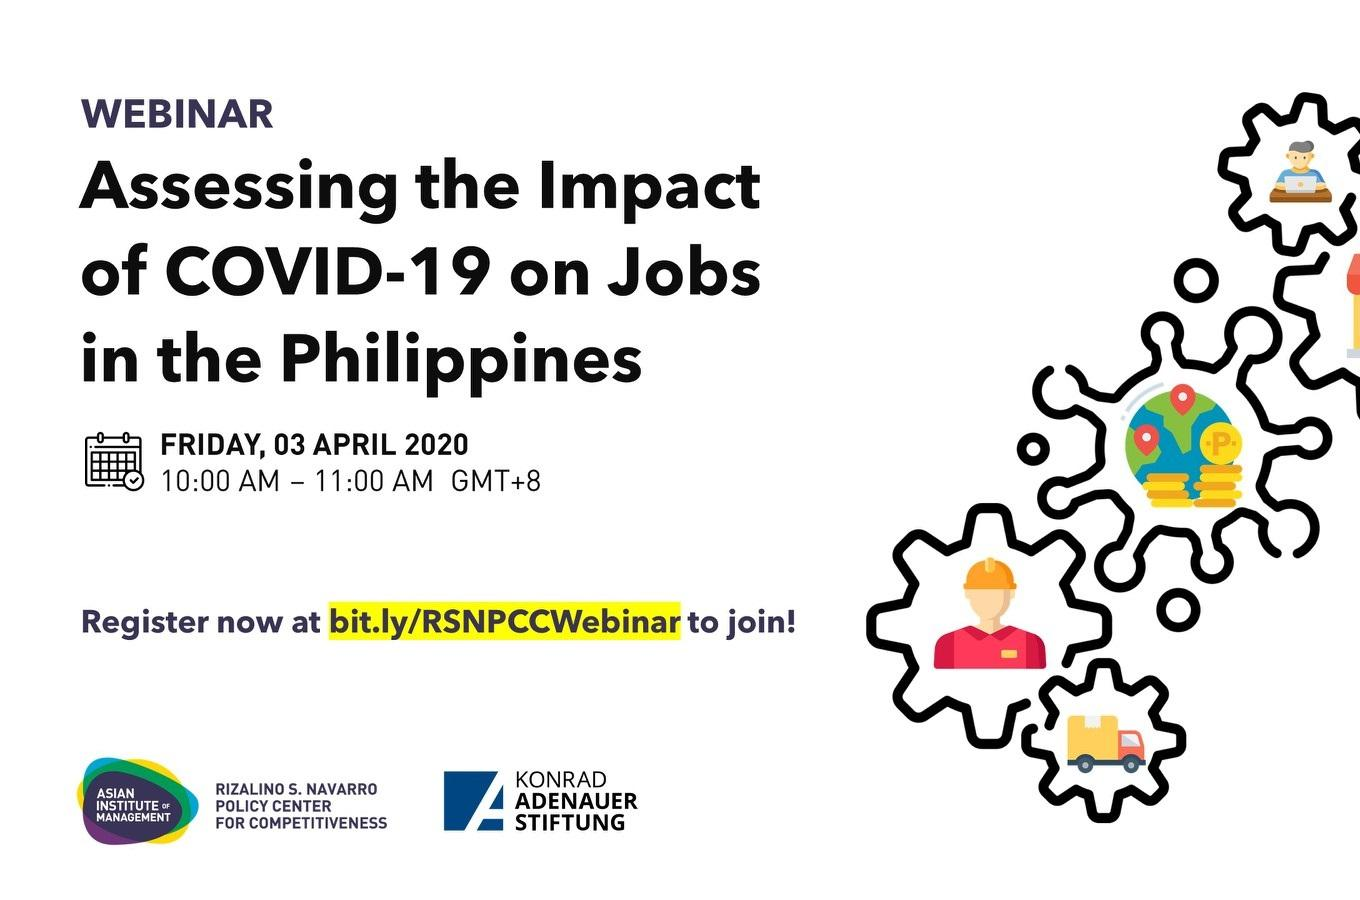 Assessing the Impact of COVID-19 on Jobs in the Philippines